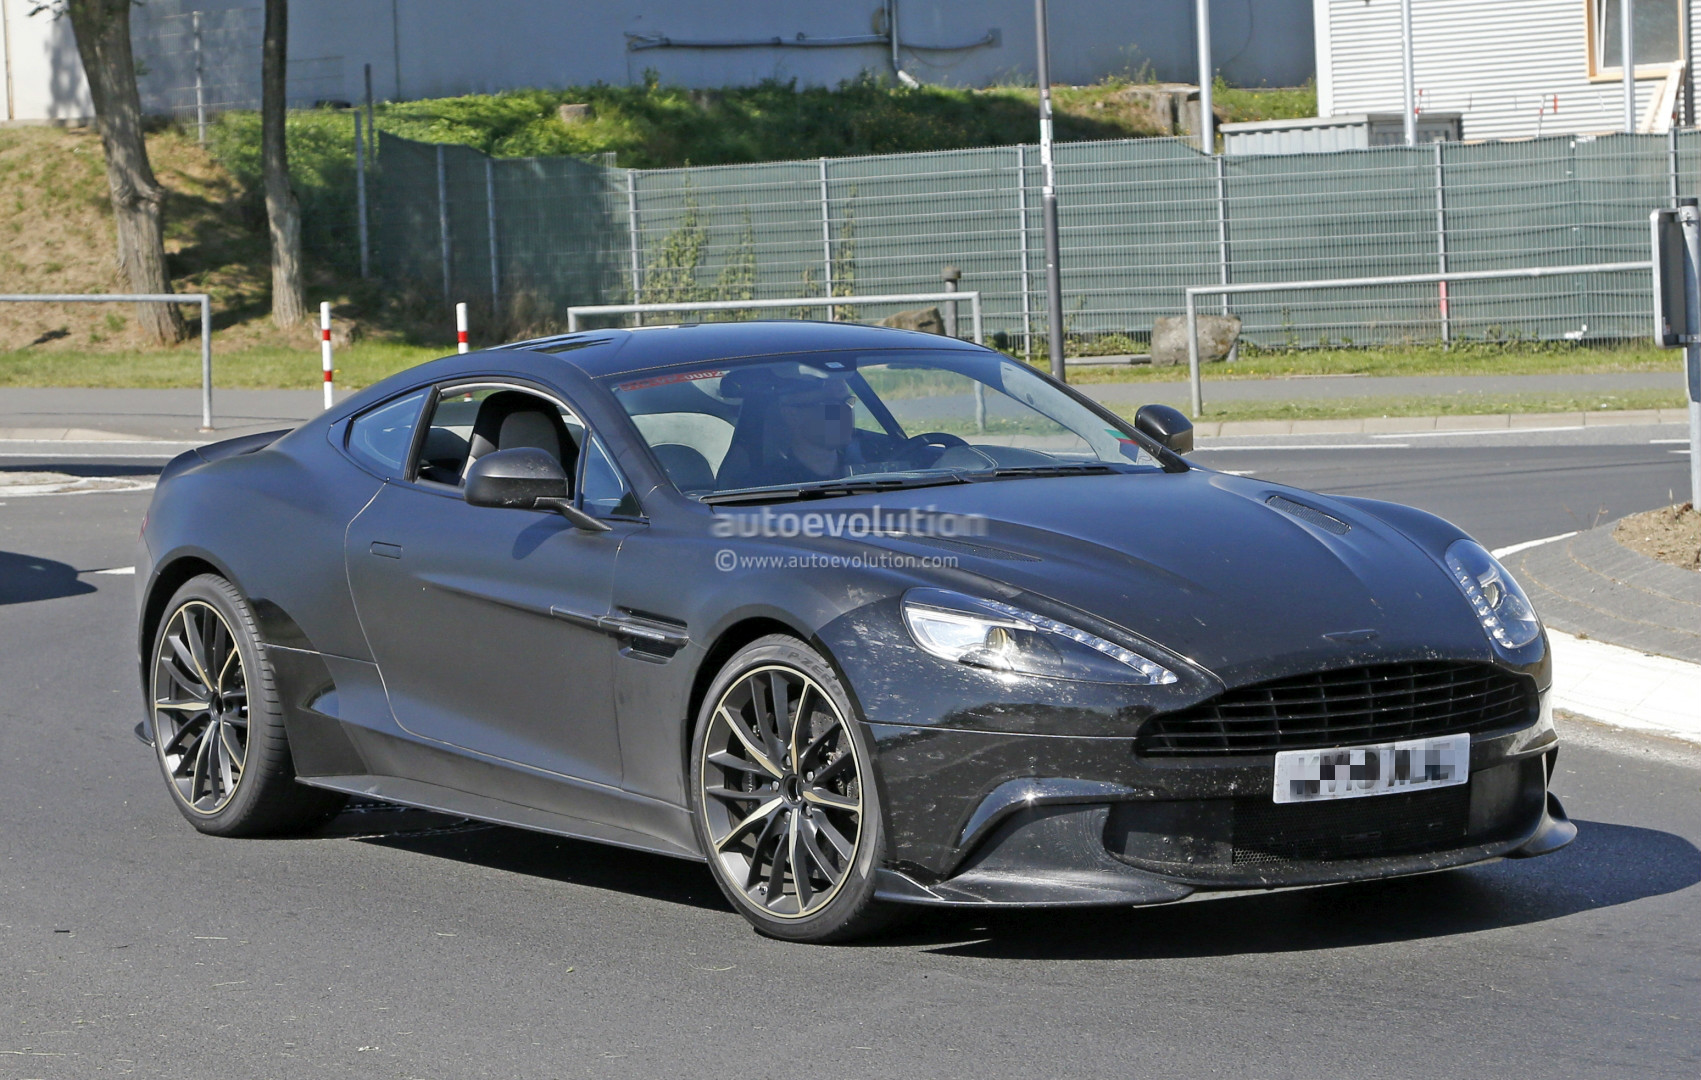 2018 aston martin vanquish s spied a 600 hp v12 swansong before twin turbo era autoevolution. Black Bedroom Furniture Sets. Home Design Ideas